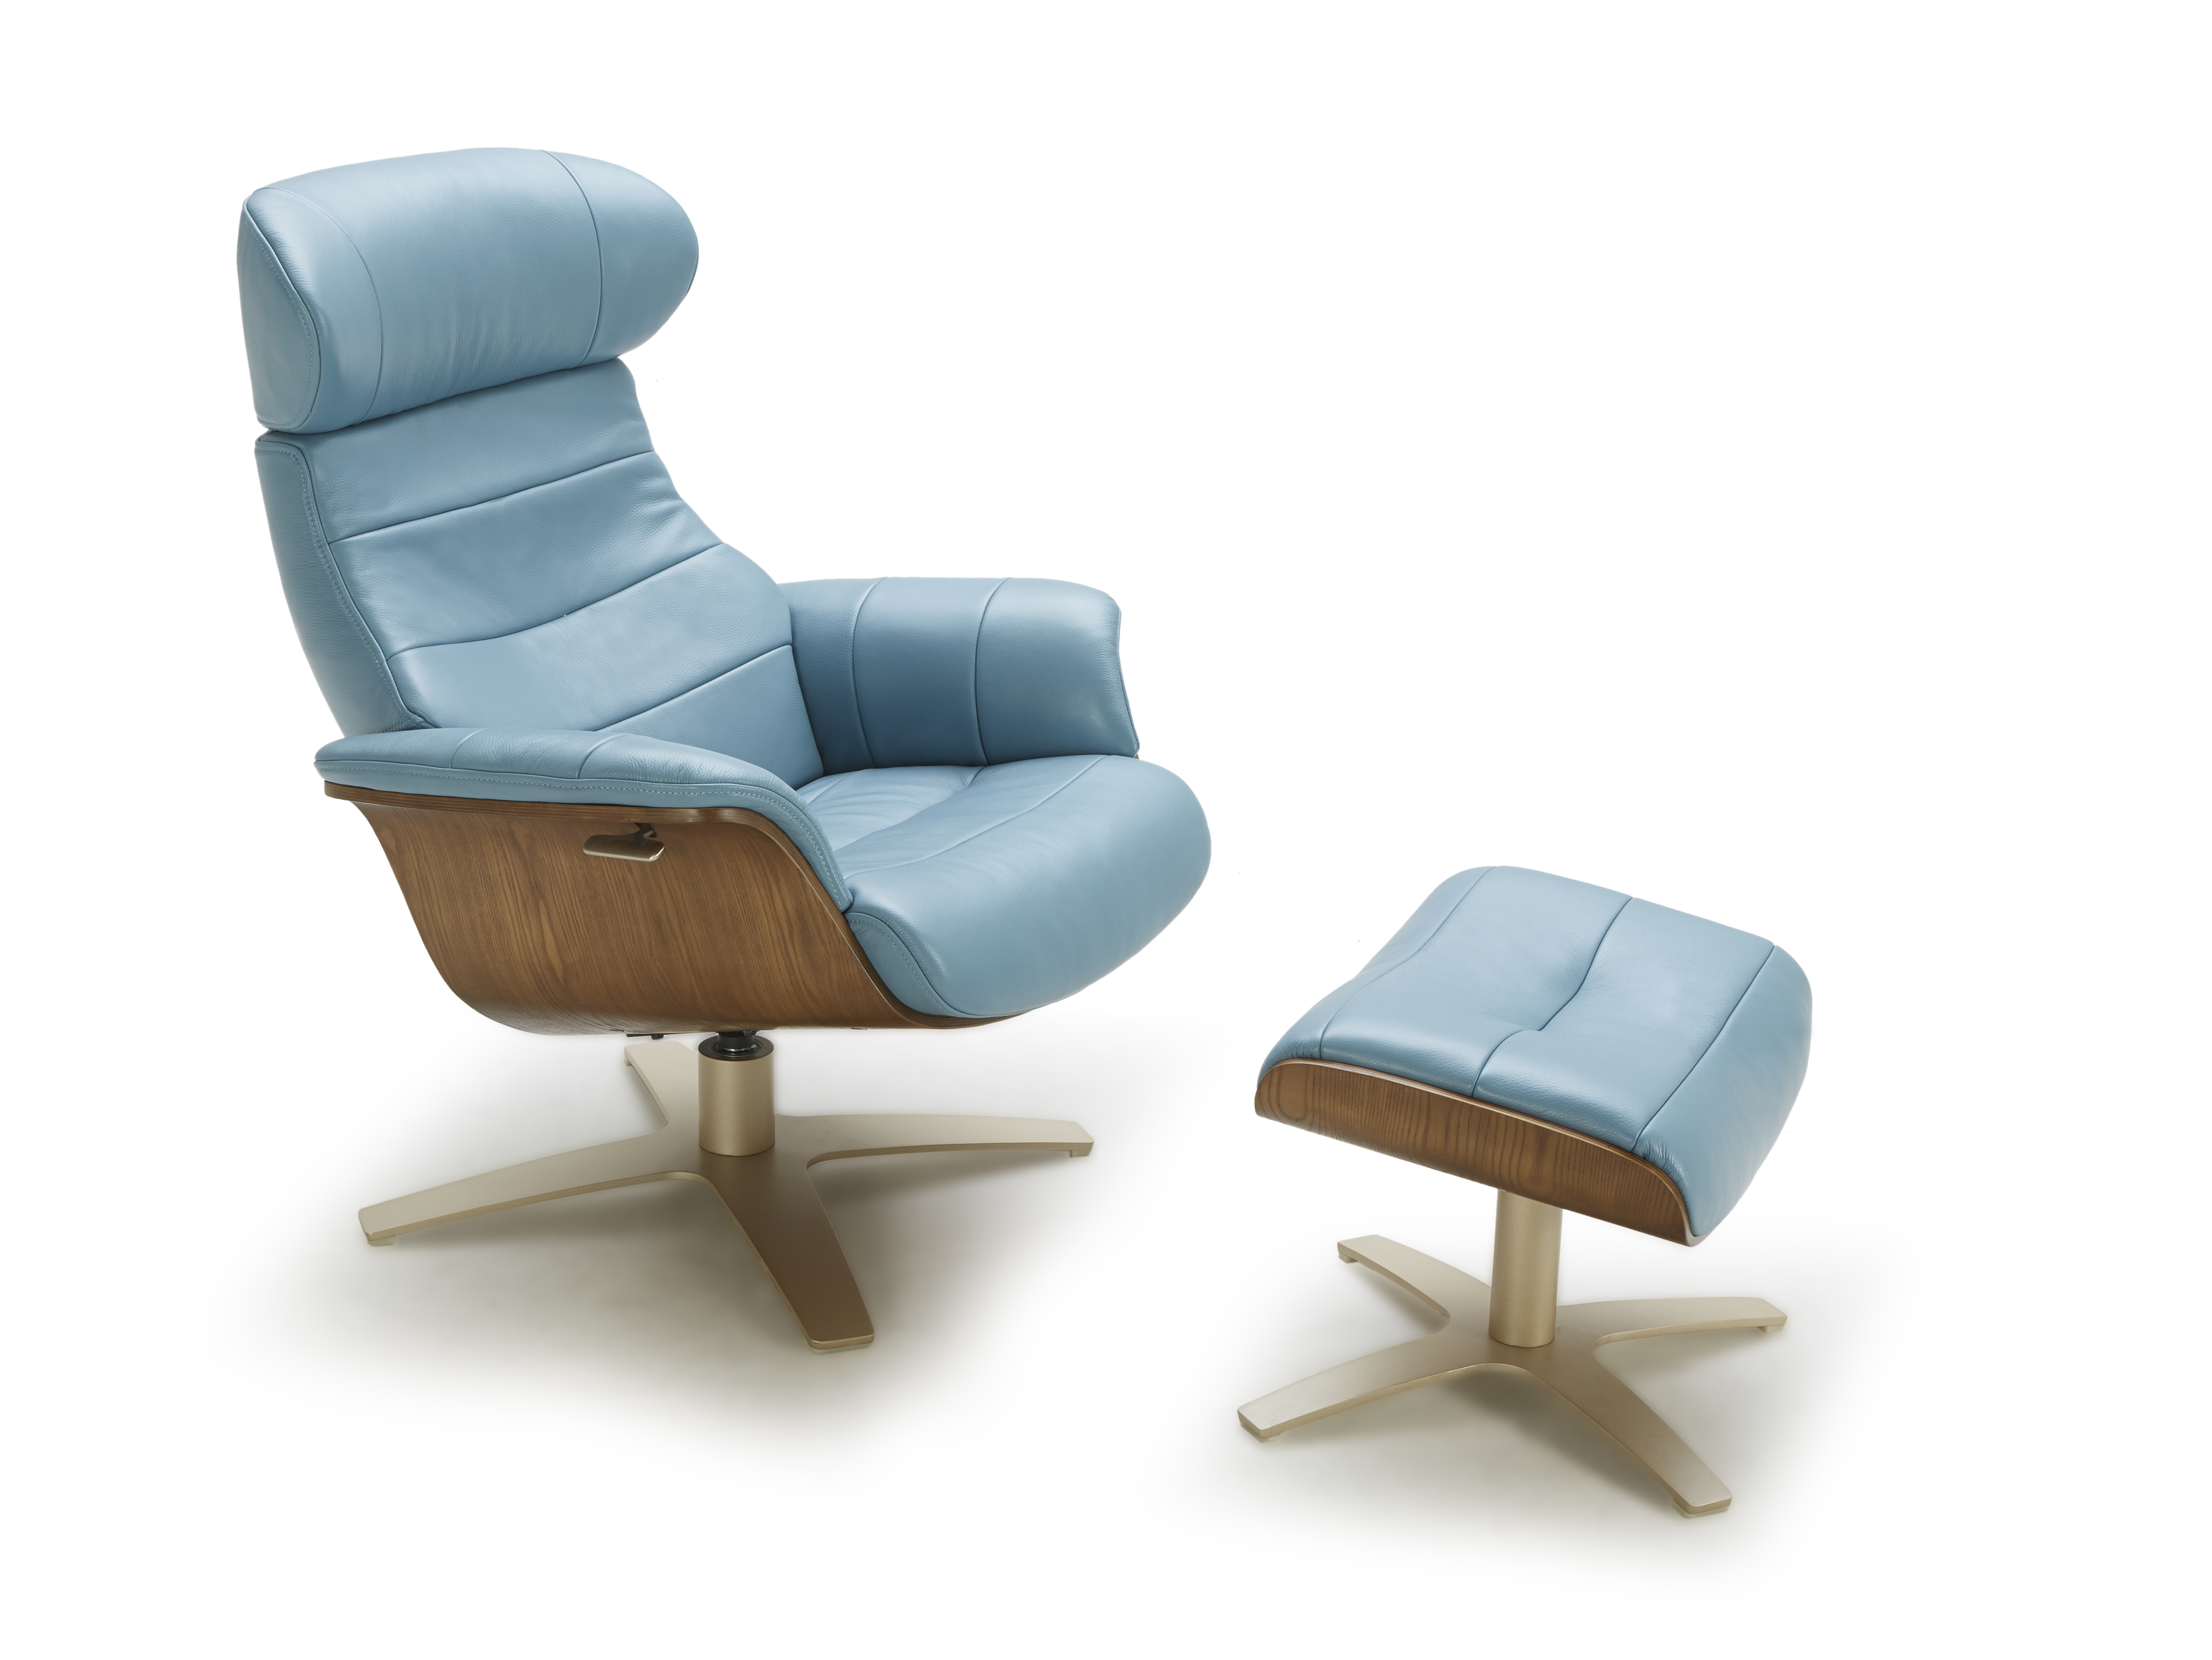 Recliner Chairs On Sale, Recliner Chairs, Kuka Home